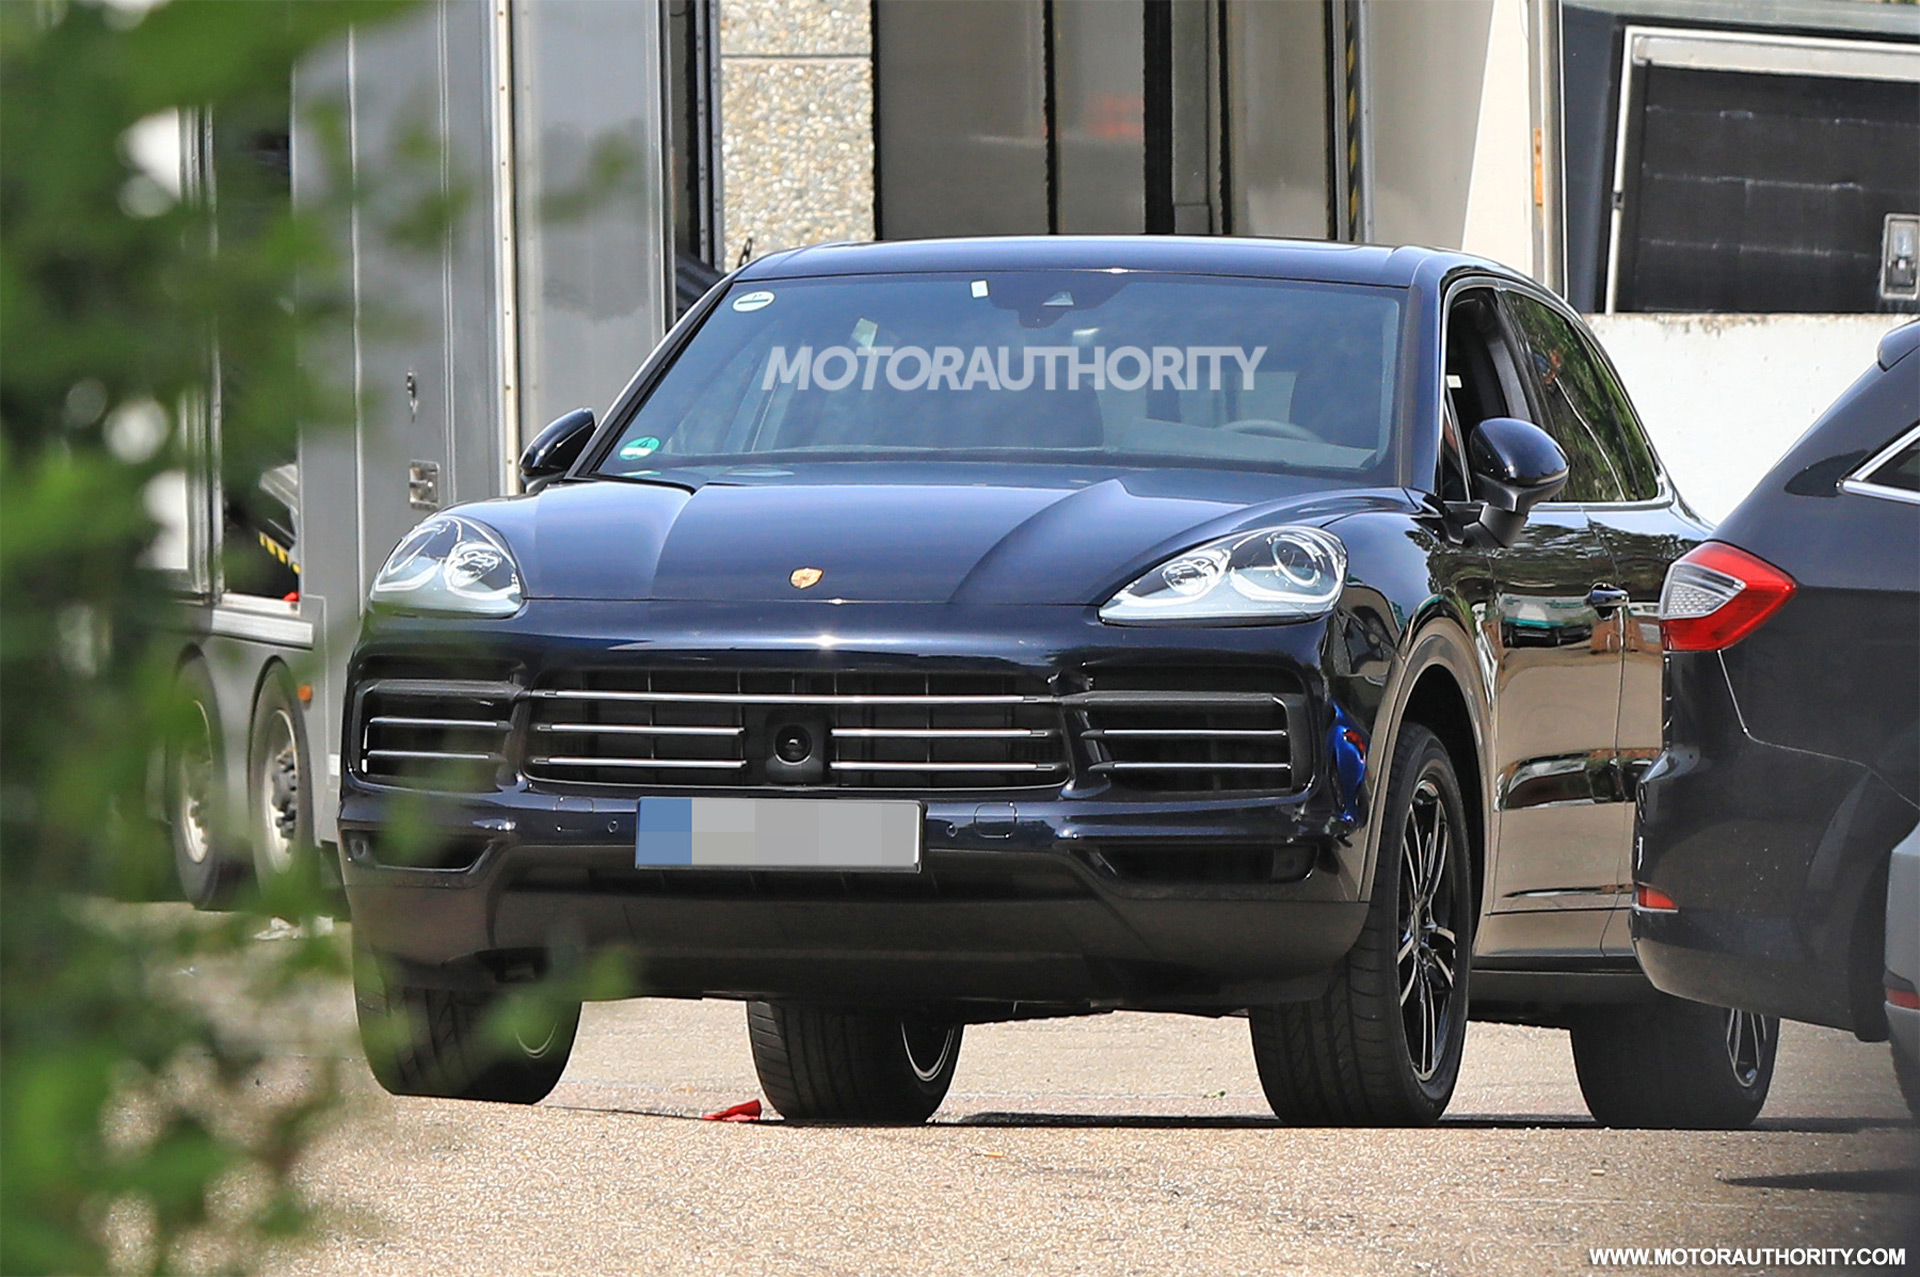 1102173 2018 Porsche Cayenne Spy Shots And Video moreover T 2 DOOR HARDTOP 138097 in addition 5 Powerful American Cars 1980 moreover Dodge Magnum besides 2018 Ford Mustang. on muscle car engines